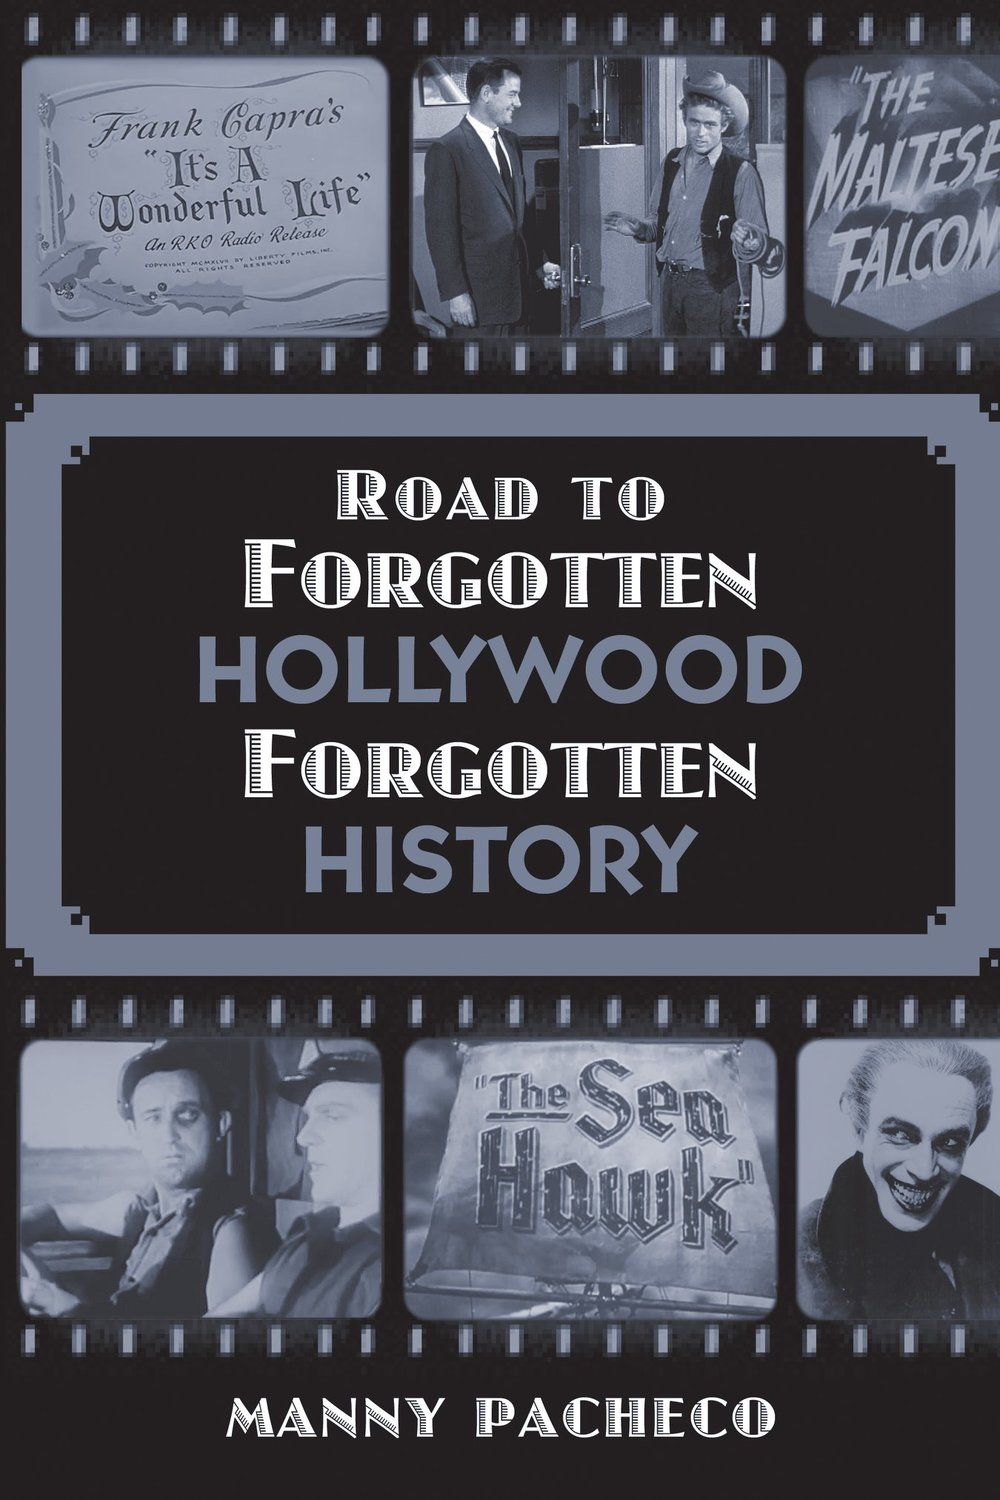 Road to Forgotten Hollywood, Forgotten History.jpg